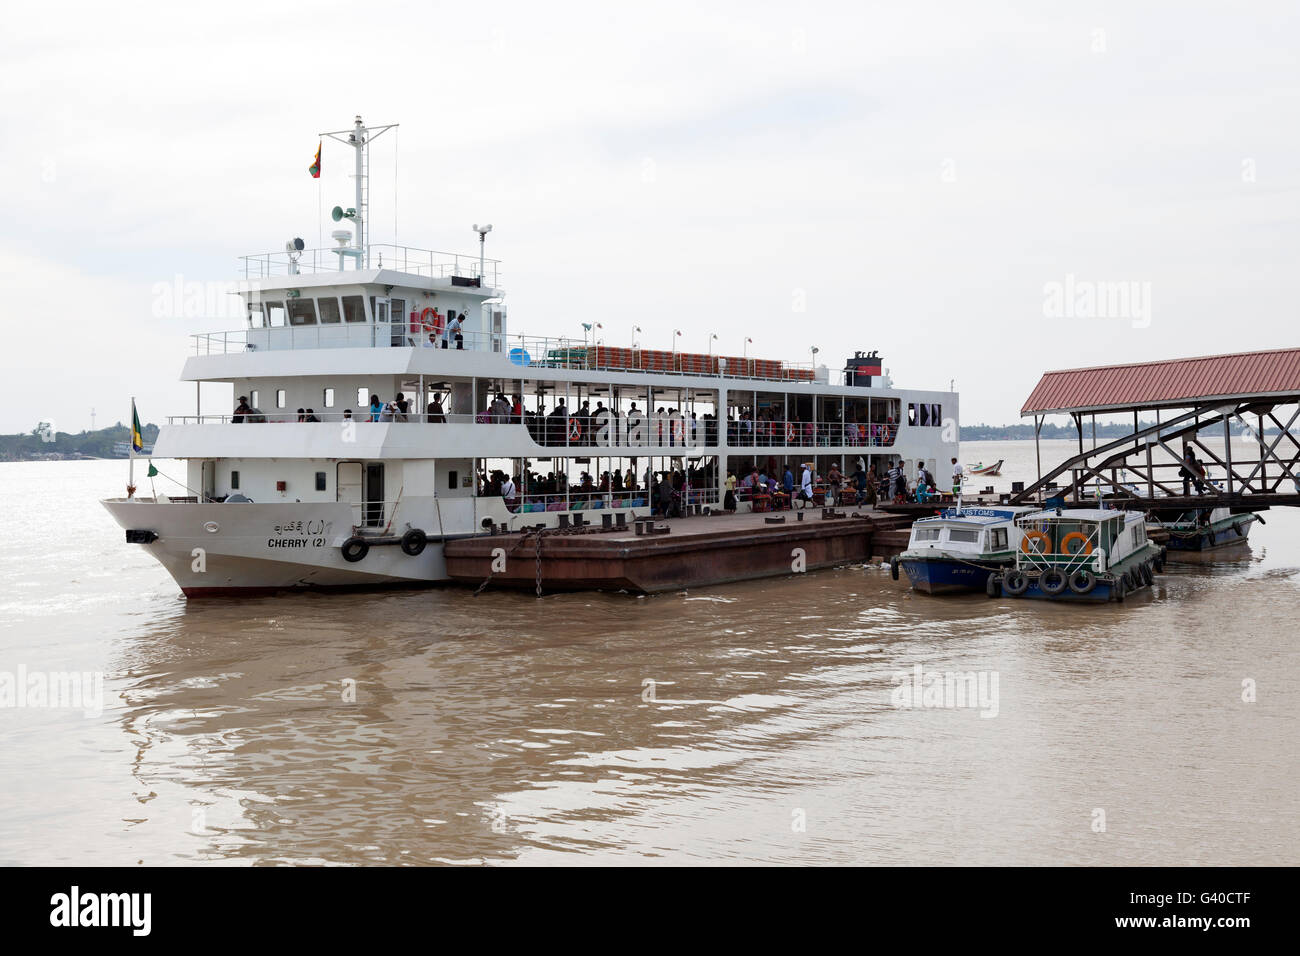 The Cherry two decker ferry-boat which commutes between Yangon (Pansodan jetty) and Dalah, on the other side of - Stock Image